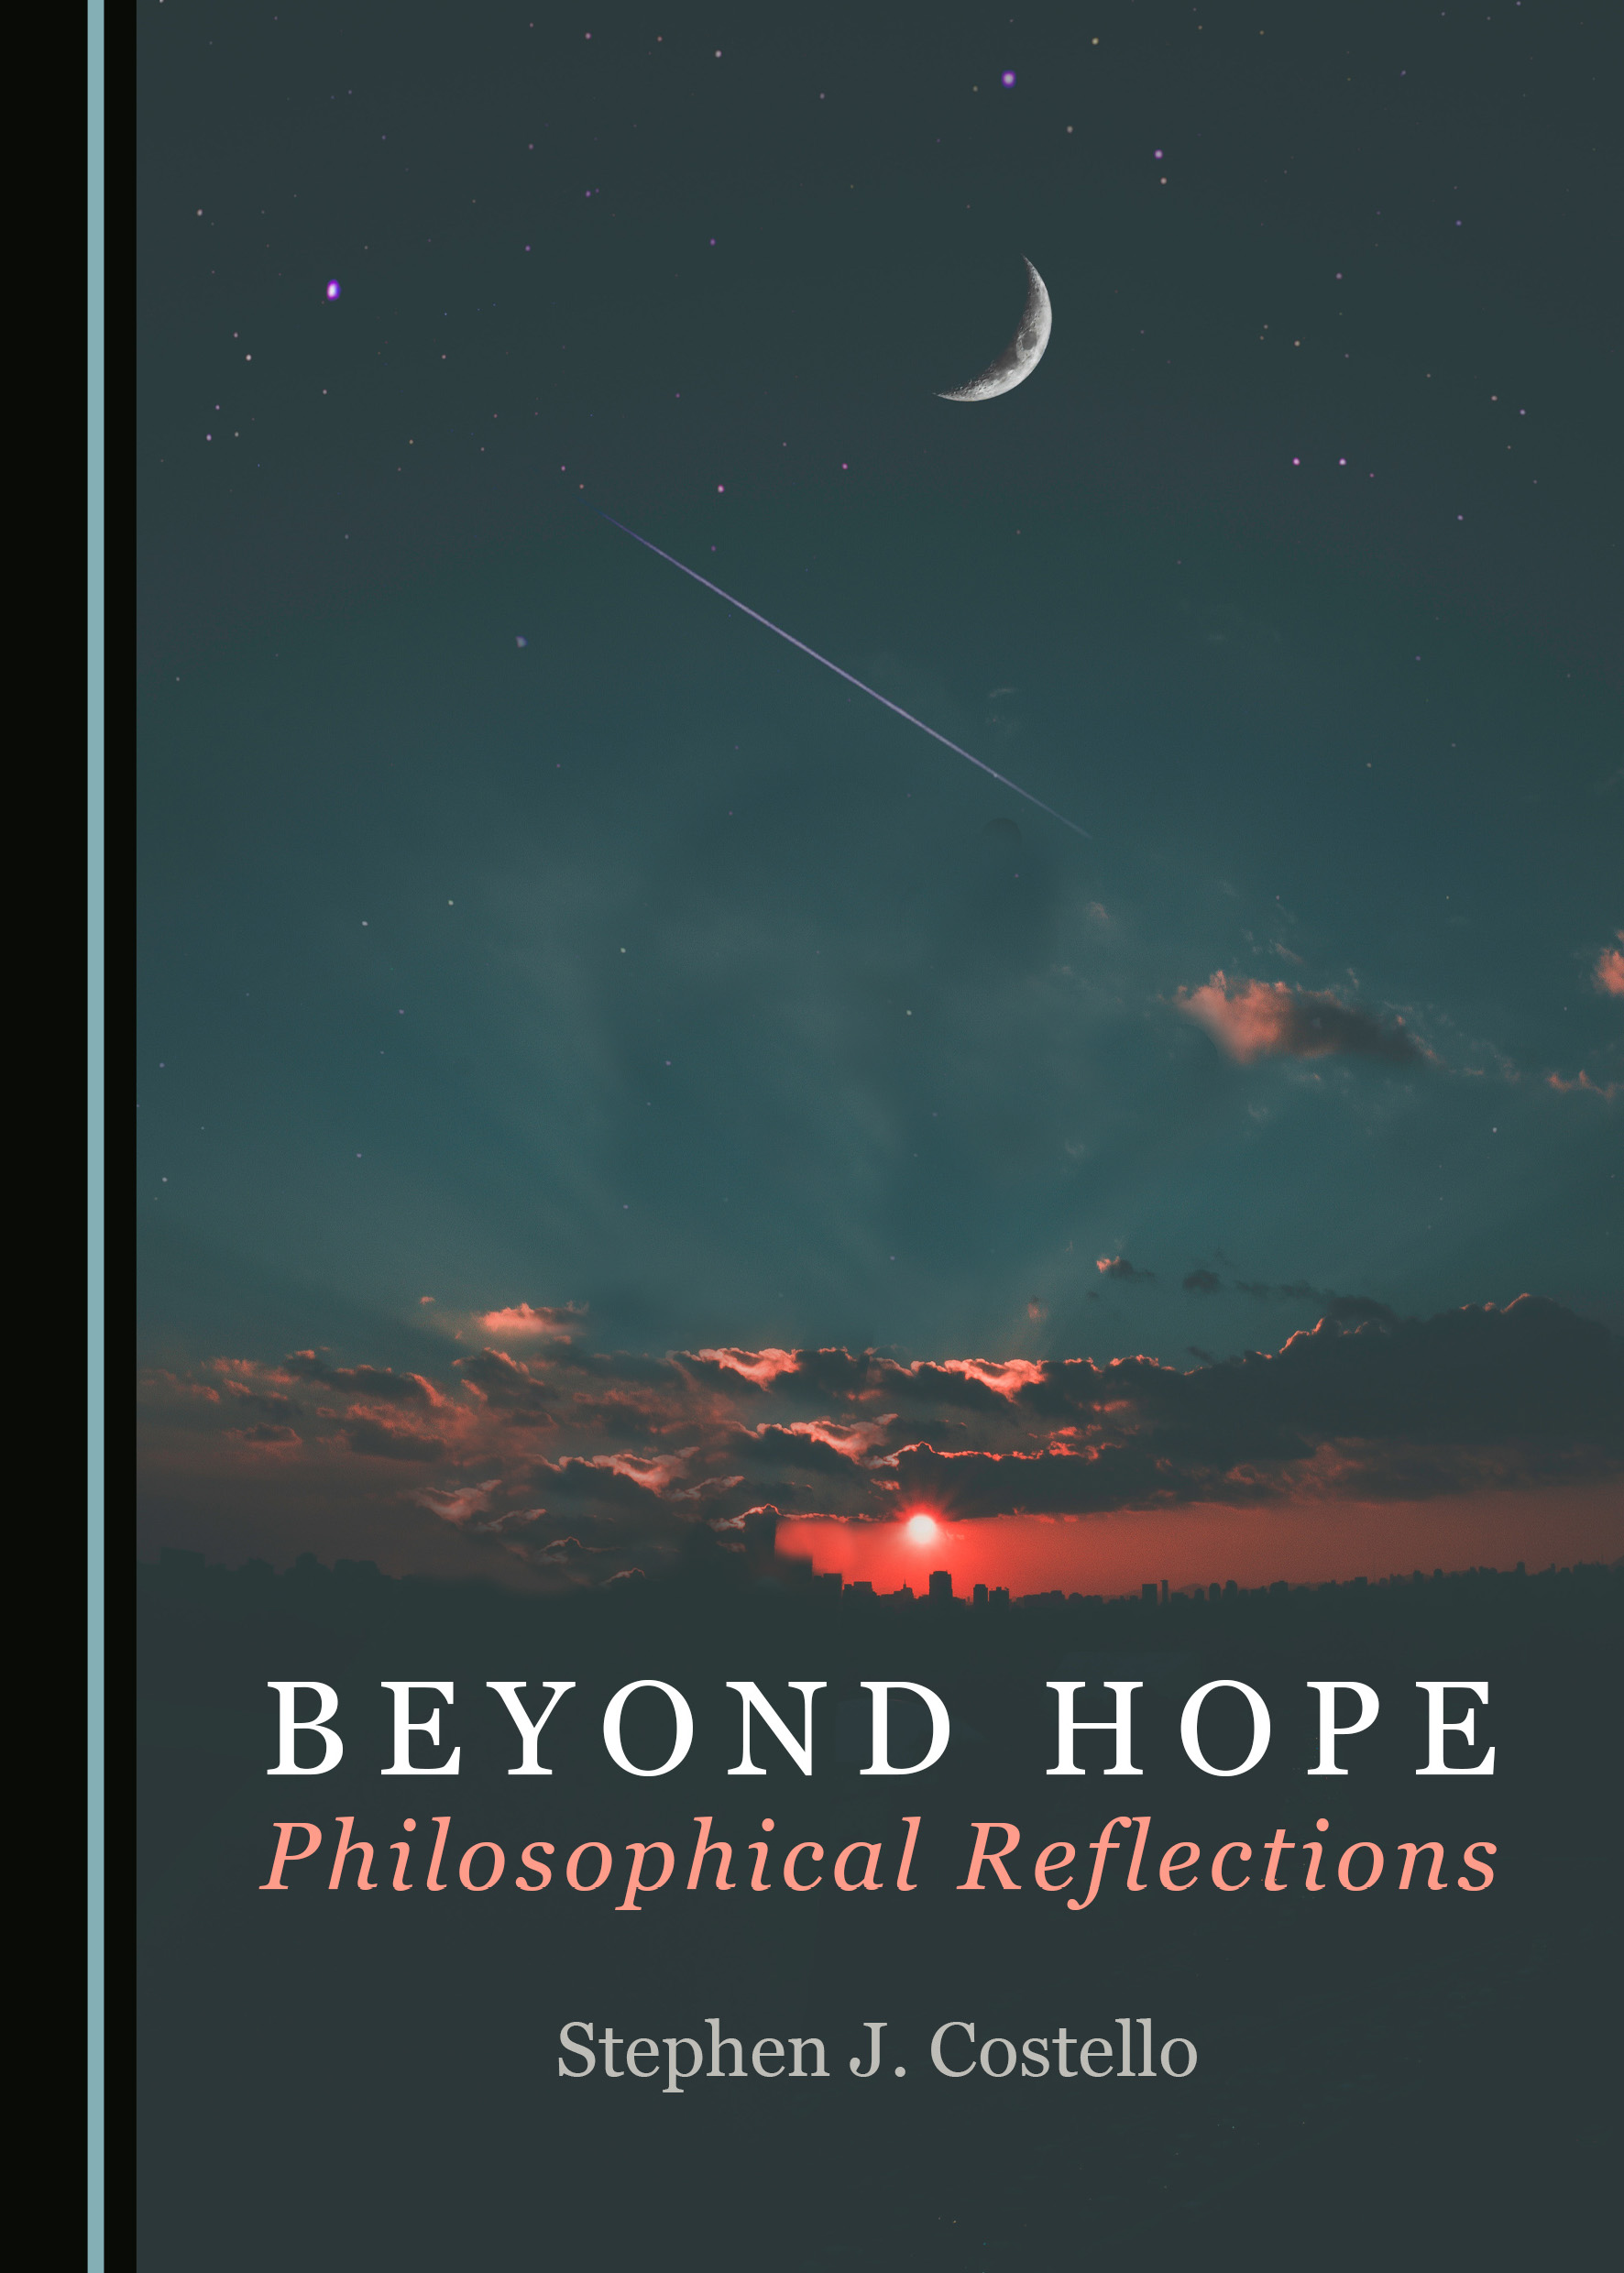 Beyond Hope: Philosophical Reflections